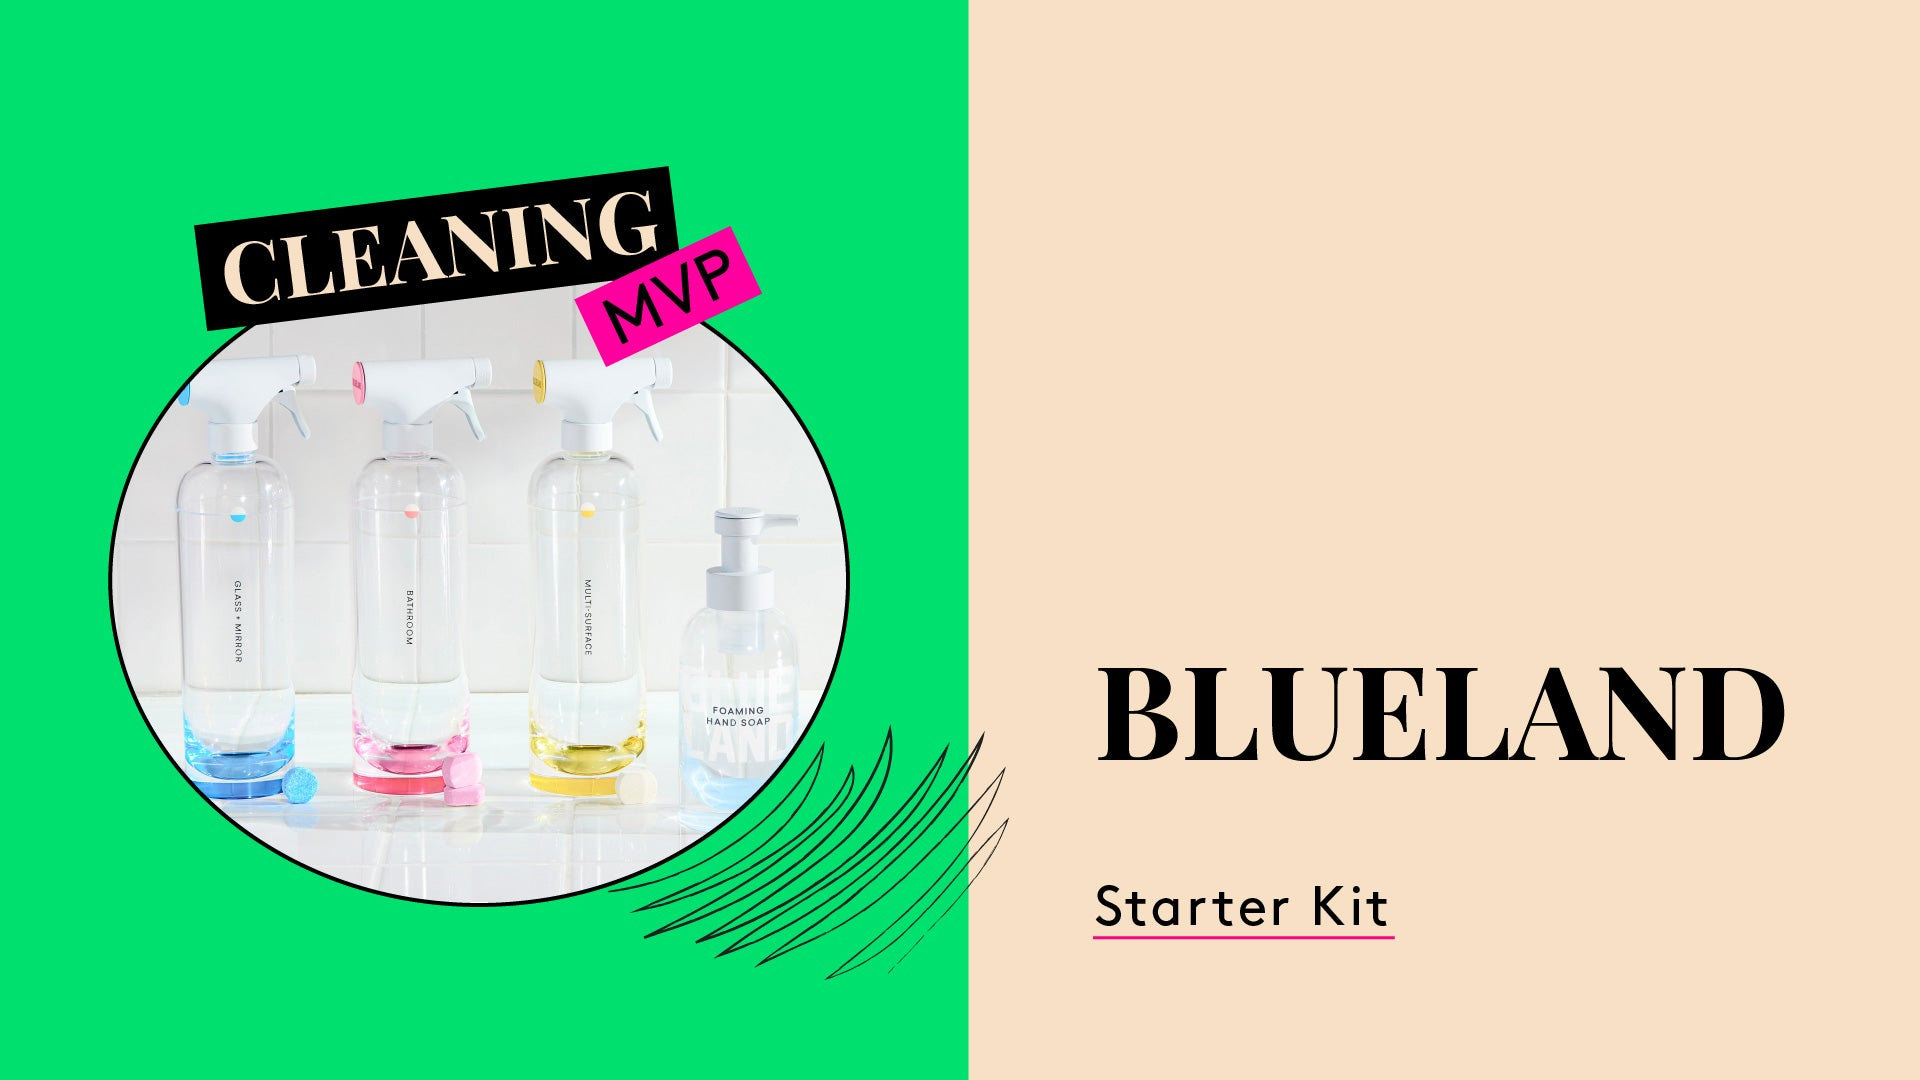 Blueland cleaning products. This is a photo of the Blueland starter kit.